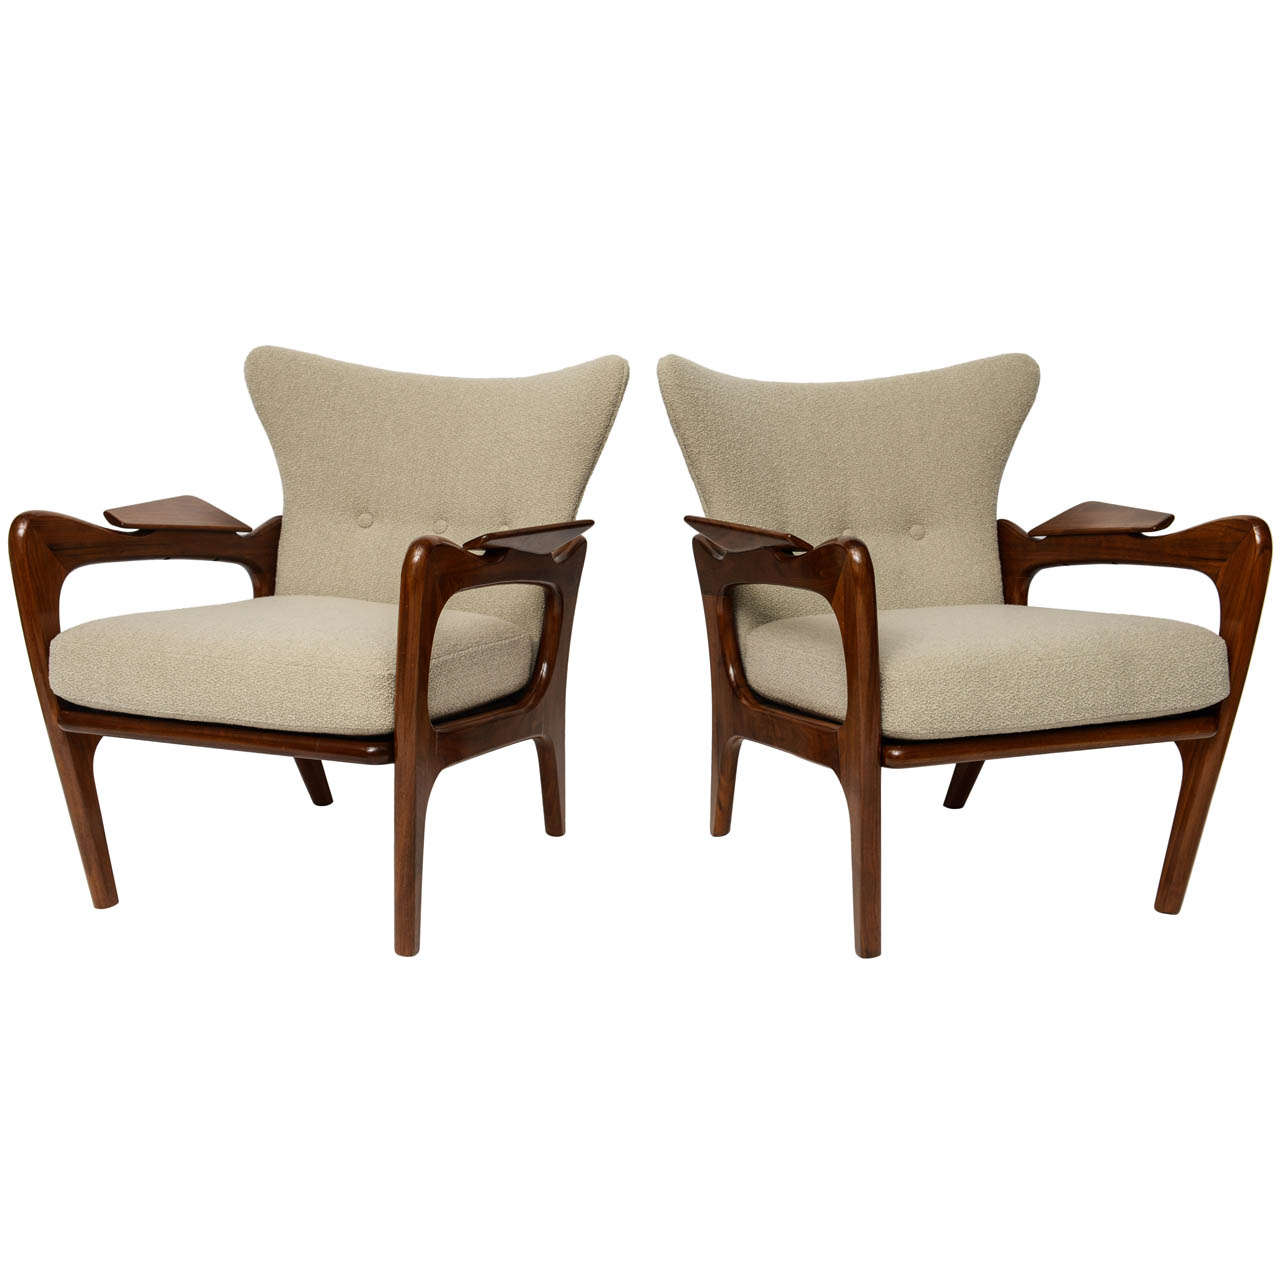 Pair Of Low Wing Back Lounge Chairs By Adrian Pearsall At